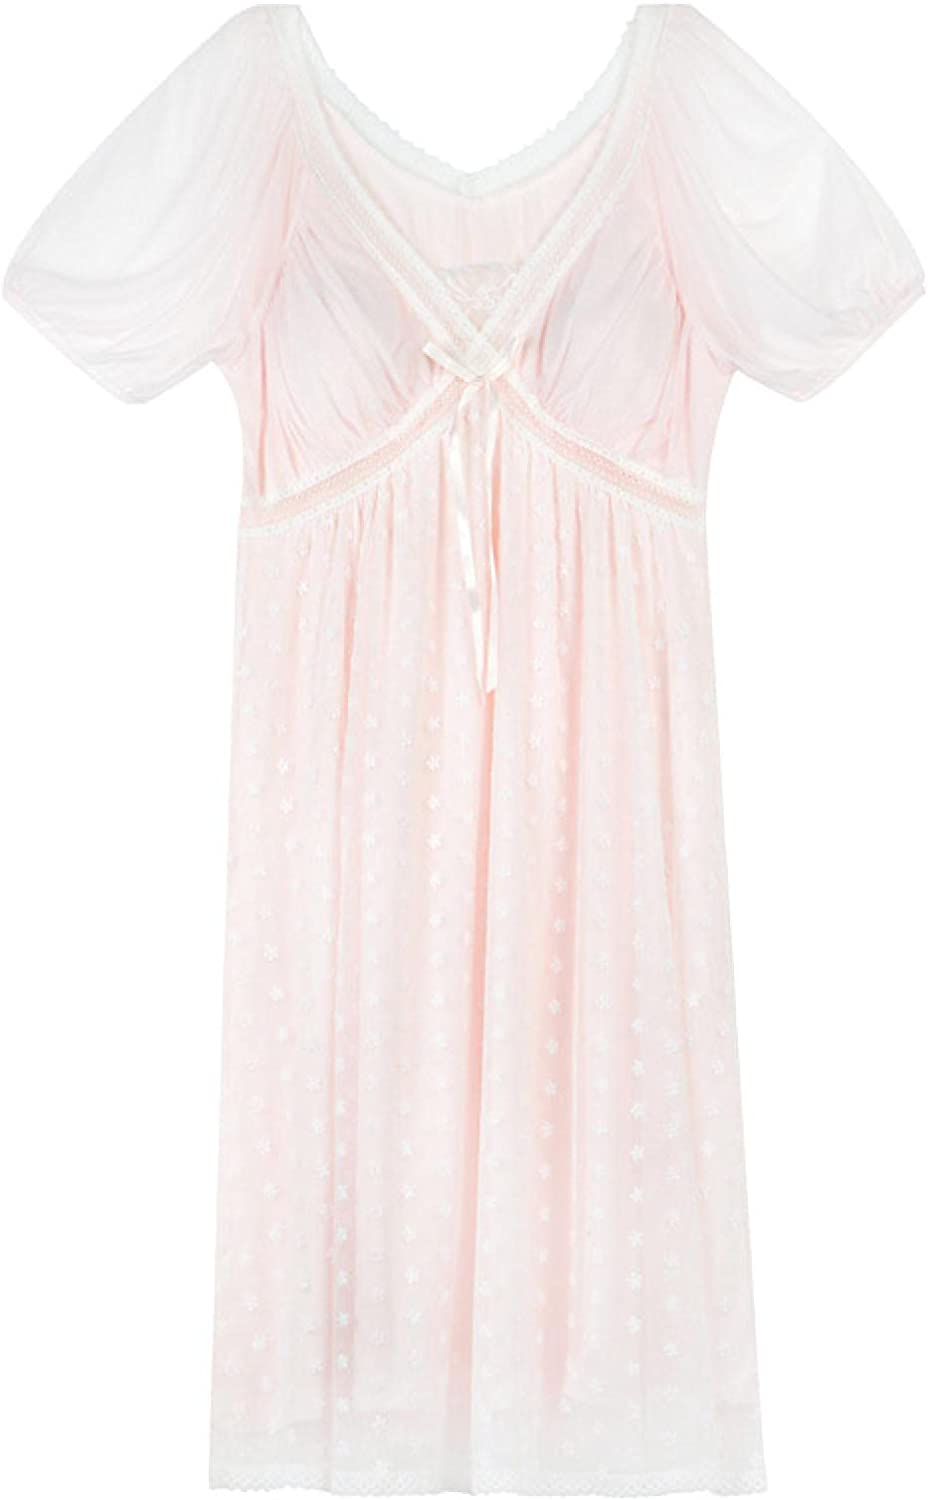 STJDM Nightgown Embroidery Lace Latest item Peignoir Dress Night Women Sexy Super-cheap